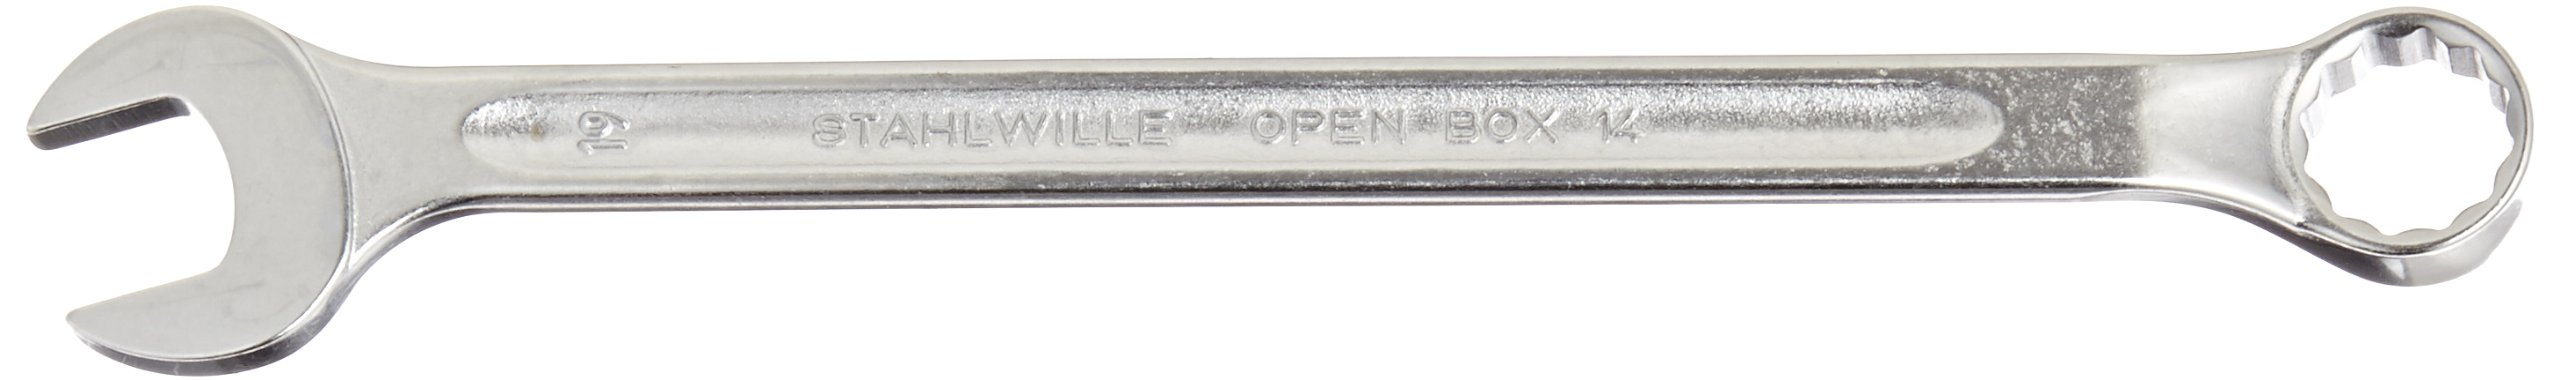 Stahlwille 14-19 Steel Long Combination Spanner, 19mm Diameter, 265mm Length, 39.5mm Width